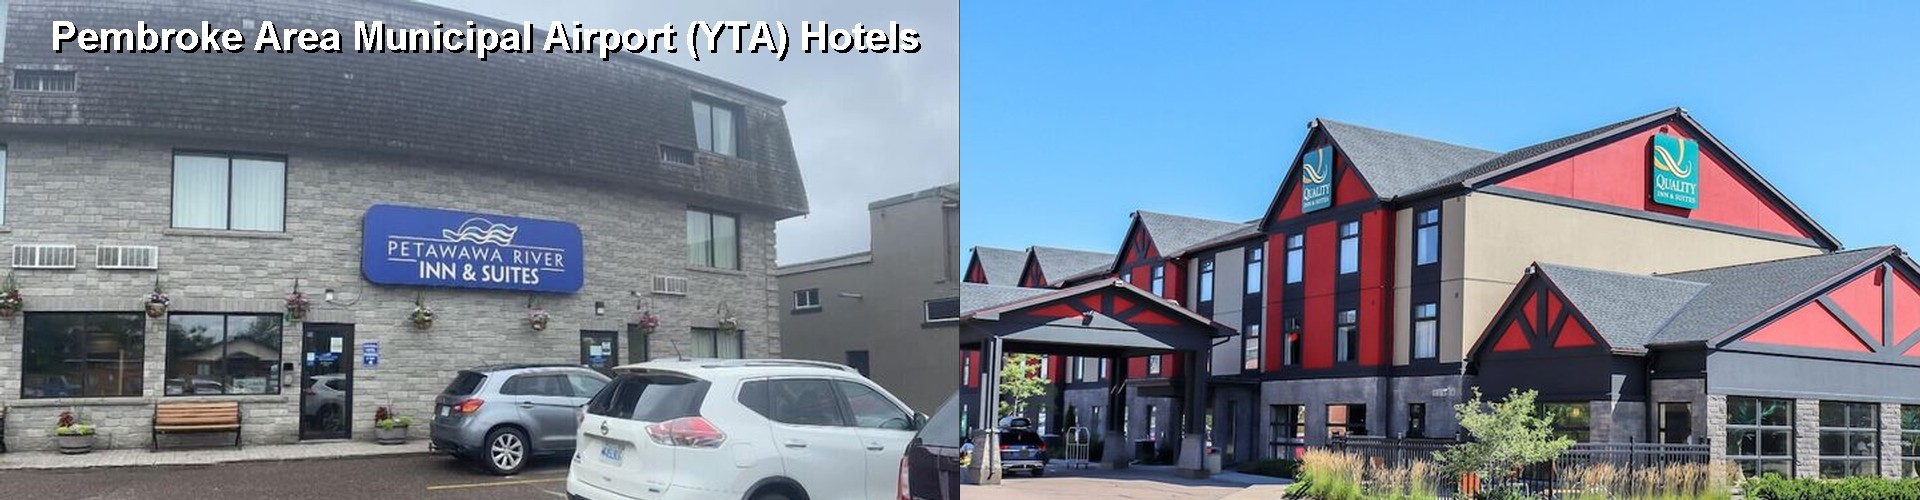 5 Best Hotels near Pembroke Area Municipal Airport (YTA)